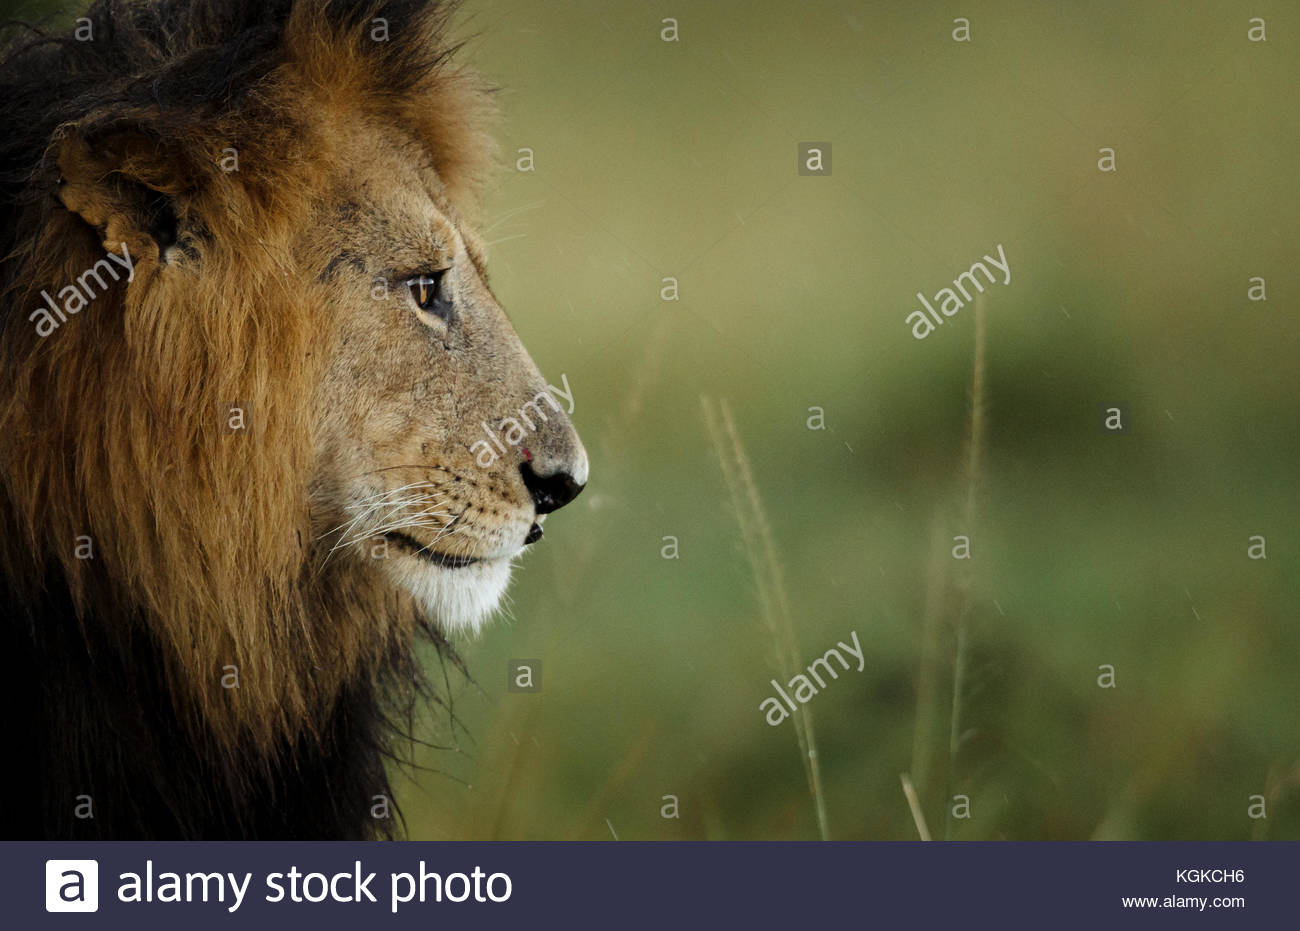 Portrait of a male lion, Panthera leo, in Masai Mara National Reserve. - Stock Image